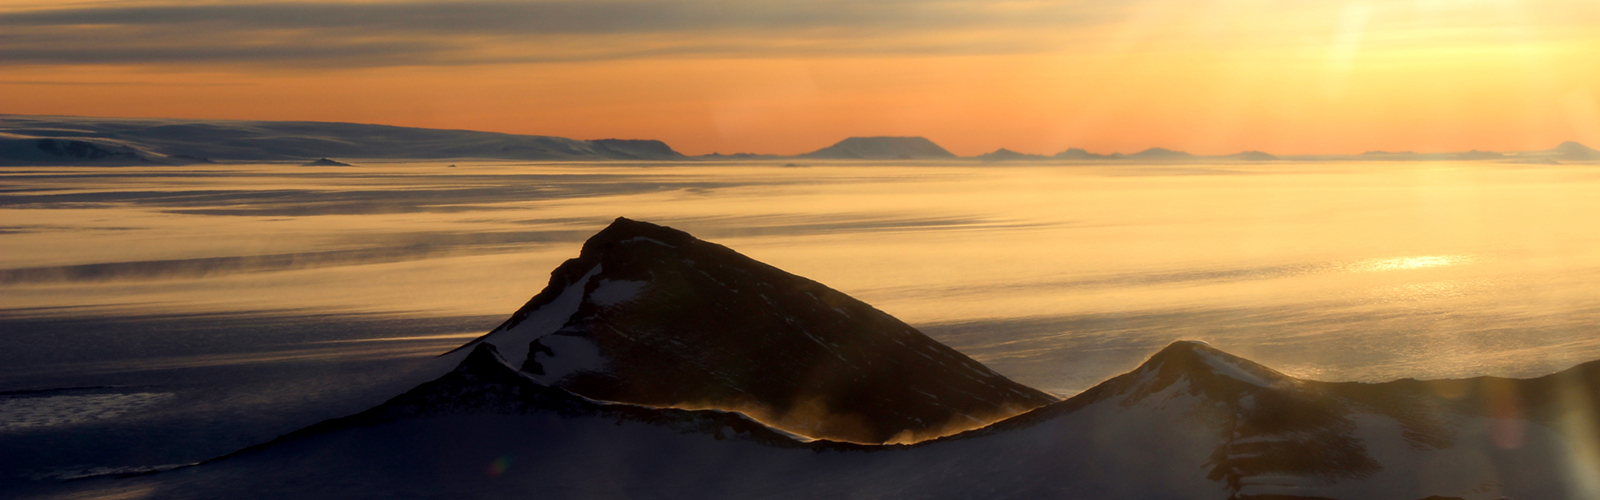 slide 2 - Operation IceBridge, ICESat-2 join forces to survey Antarctica